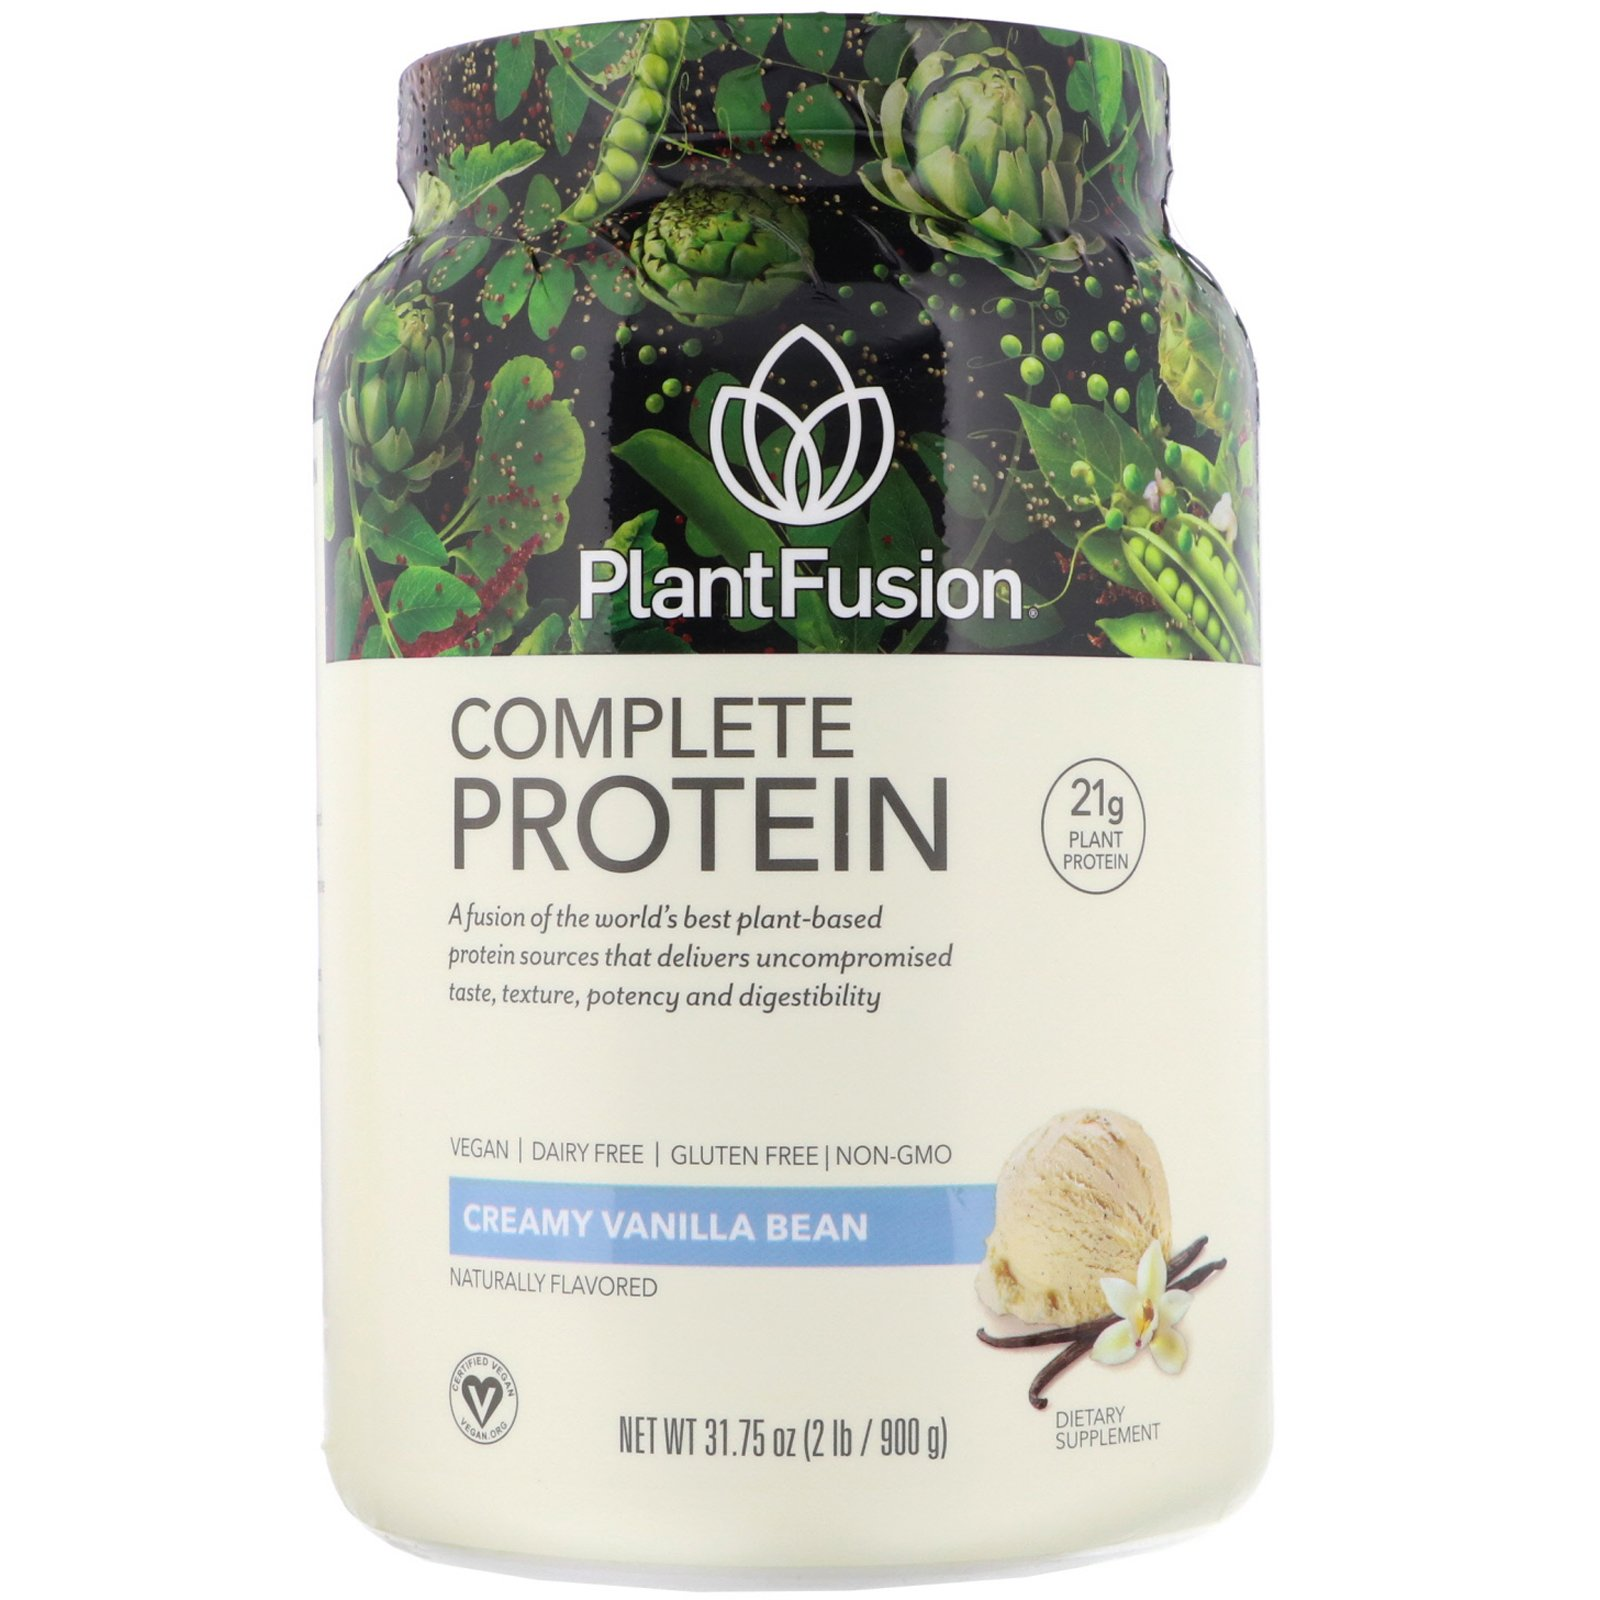 Image result for plantfusion protein powder